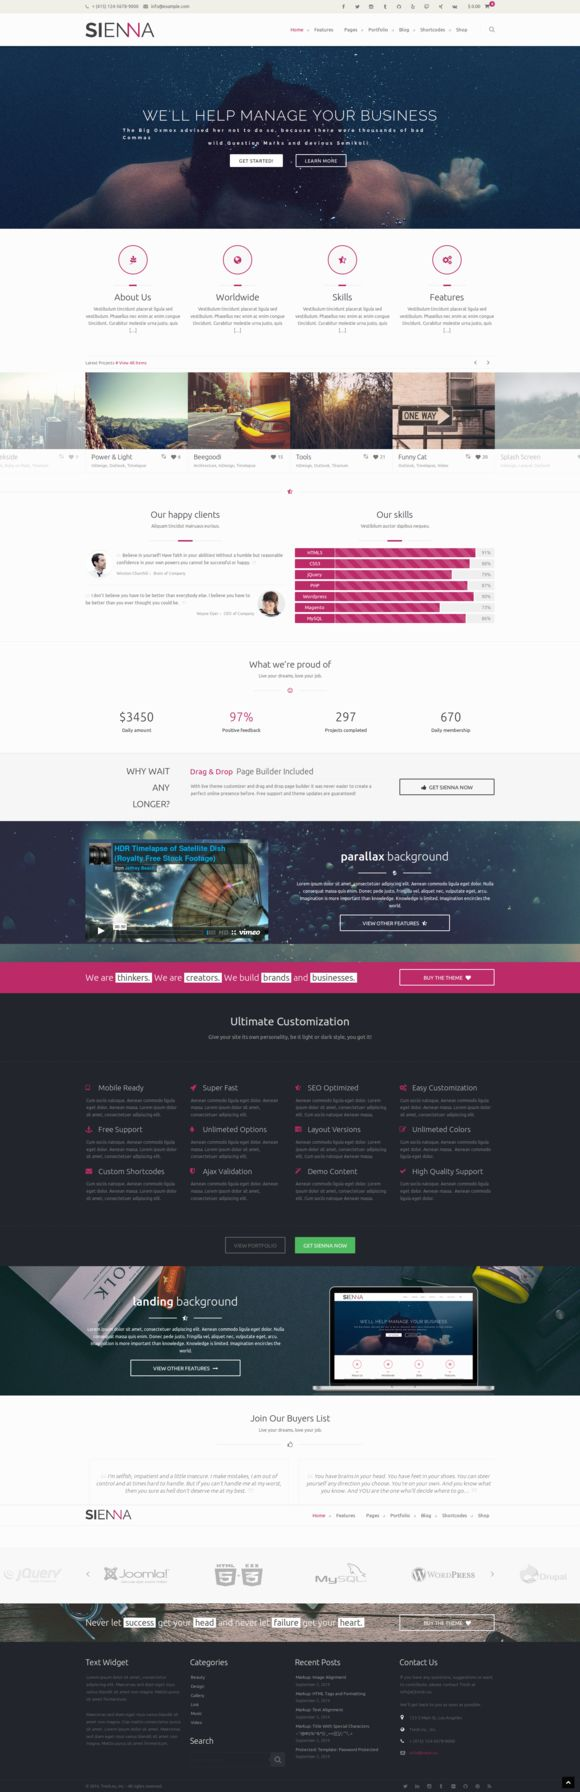 sienna-wordpress-theme-screenshot